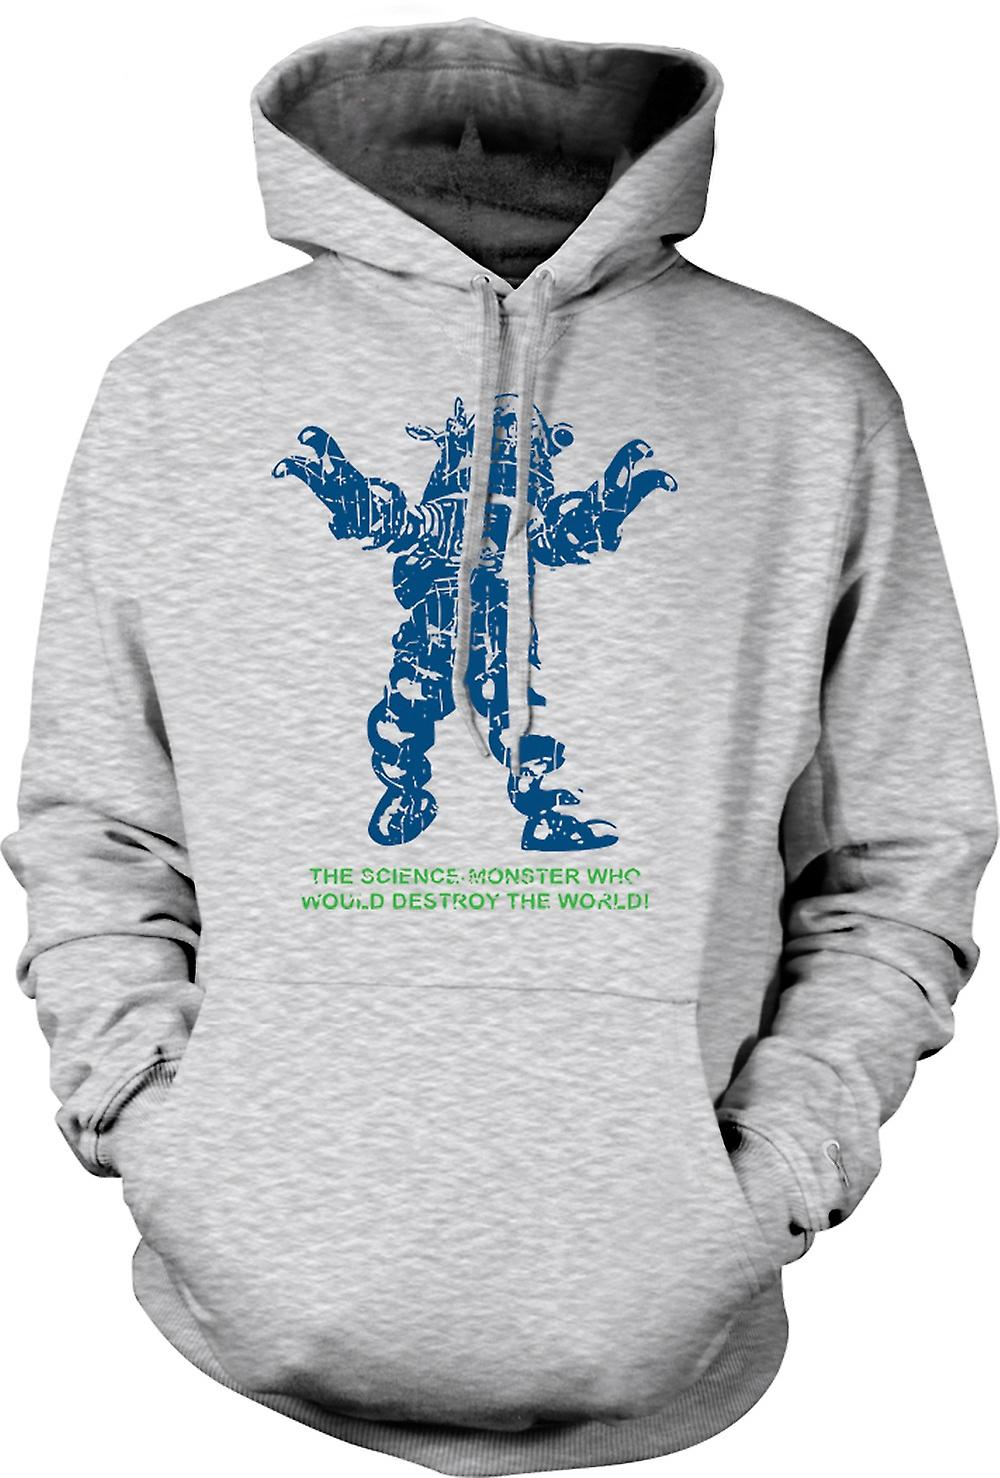 Mens Hoodie - Science monstre Détruisez Monde - Sci Fi